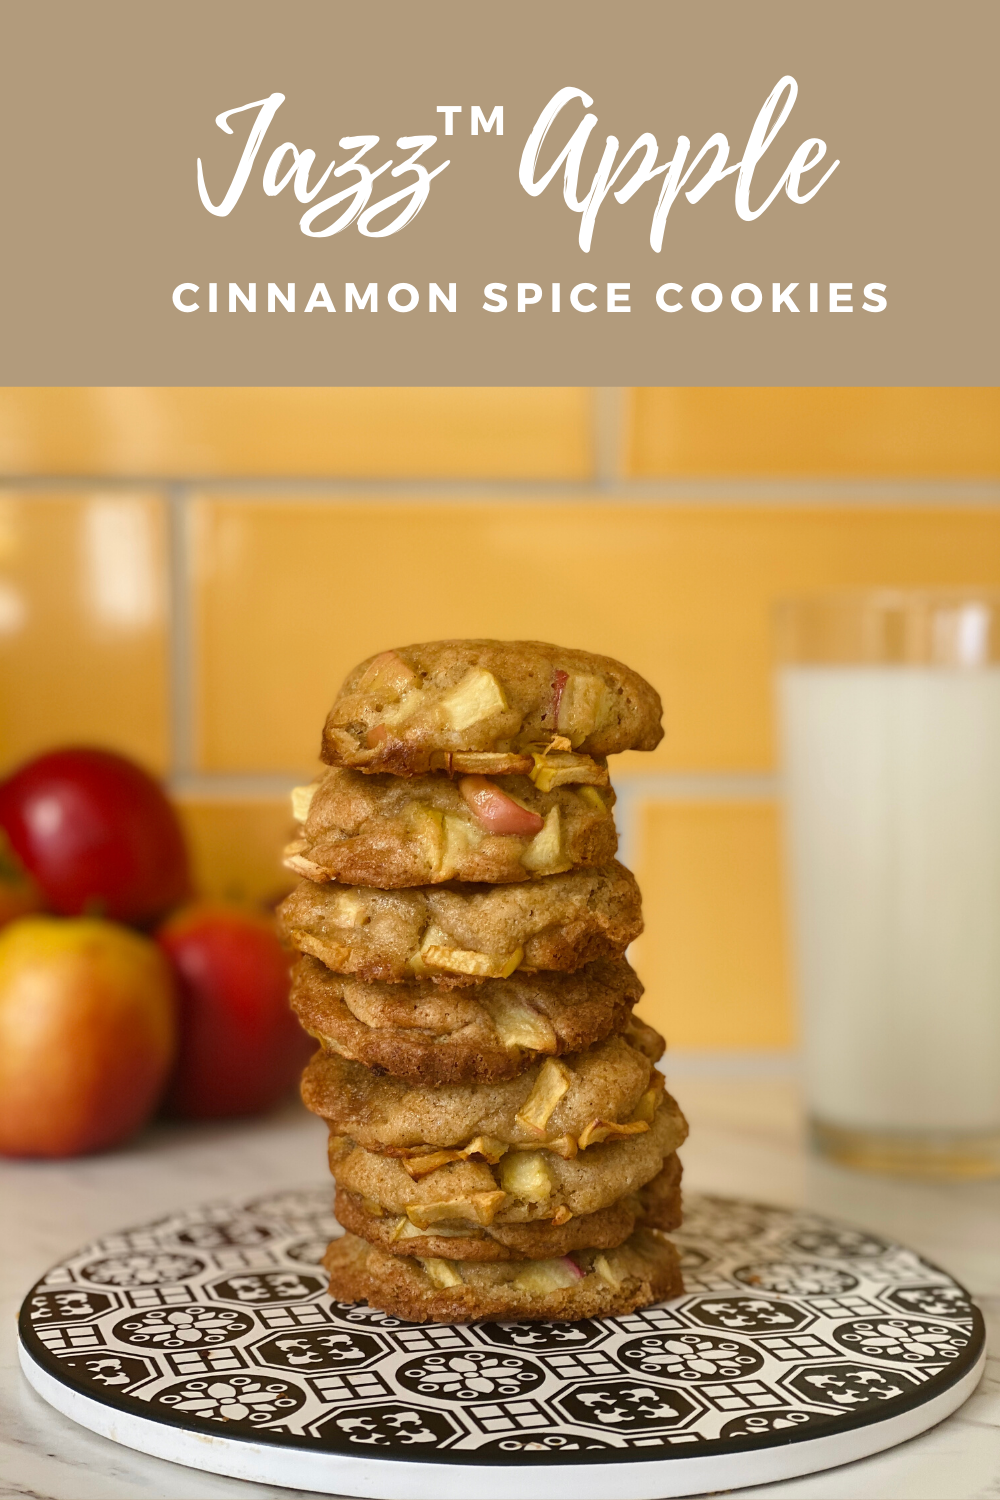 Delicious, simple and easy to cook Jazz Apple Cinnamon Spice cookies recipe that can be enjoyed by the whole family.